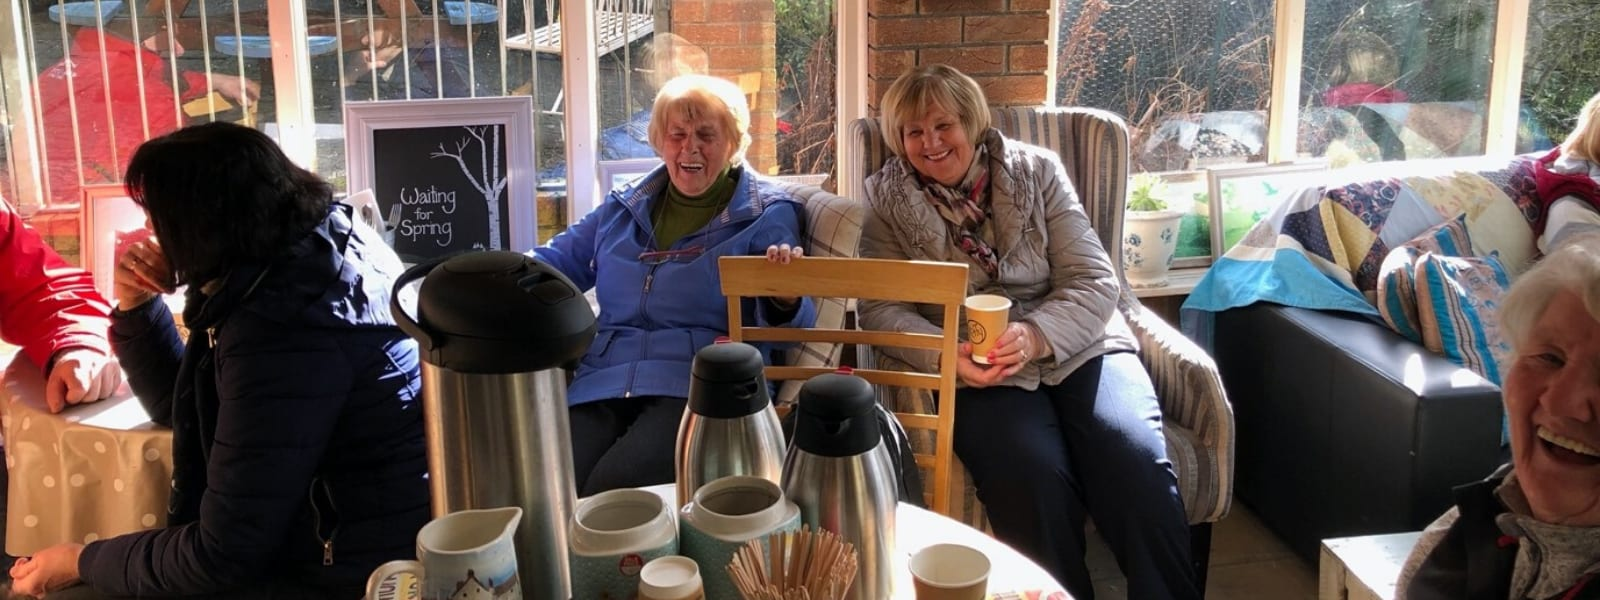 Two women sitting in chairs enjoying a cup of tea together